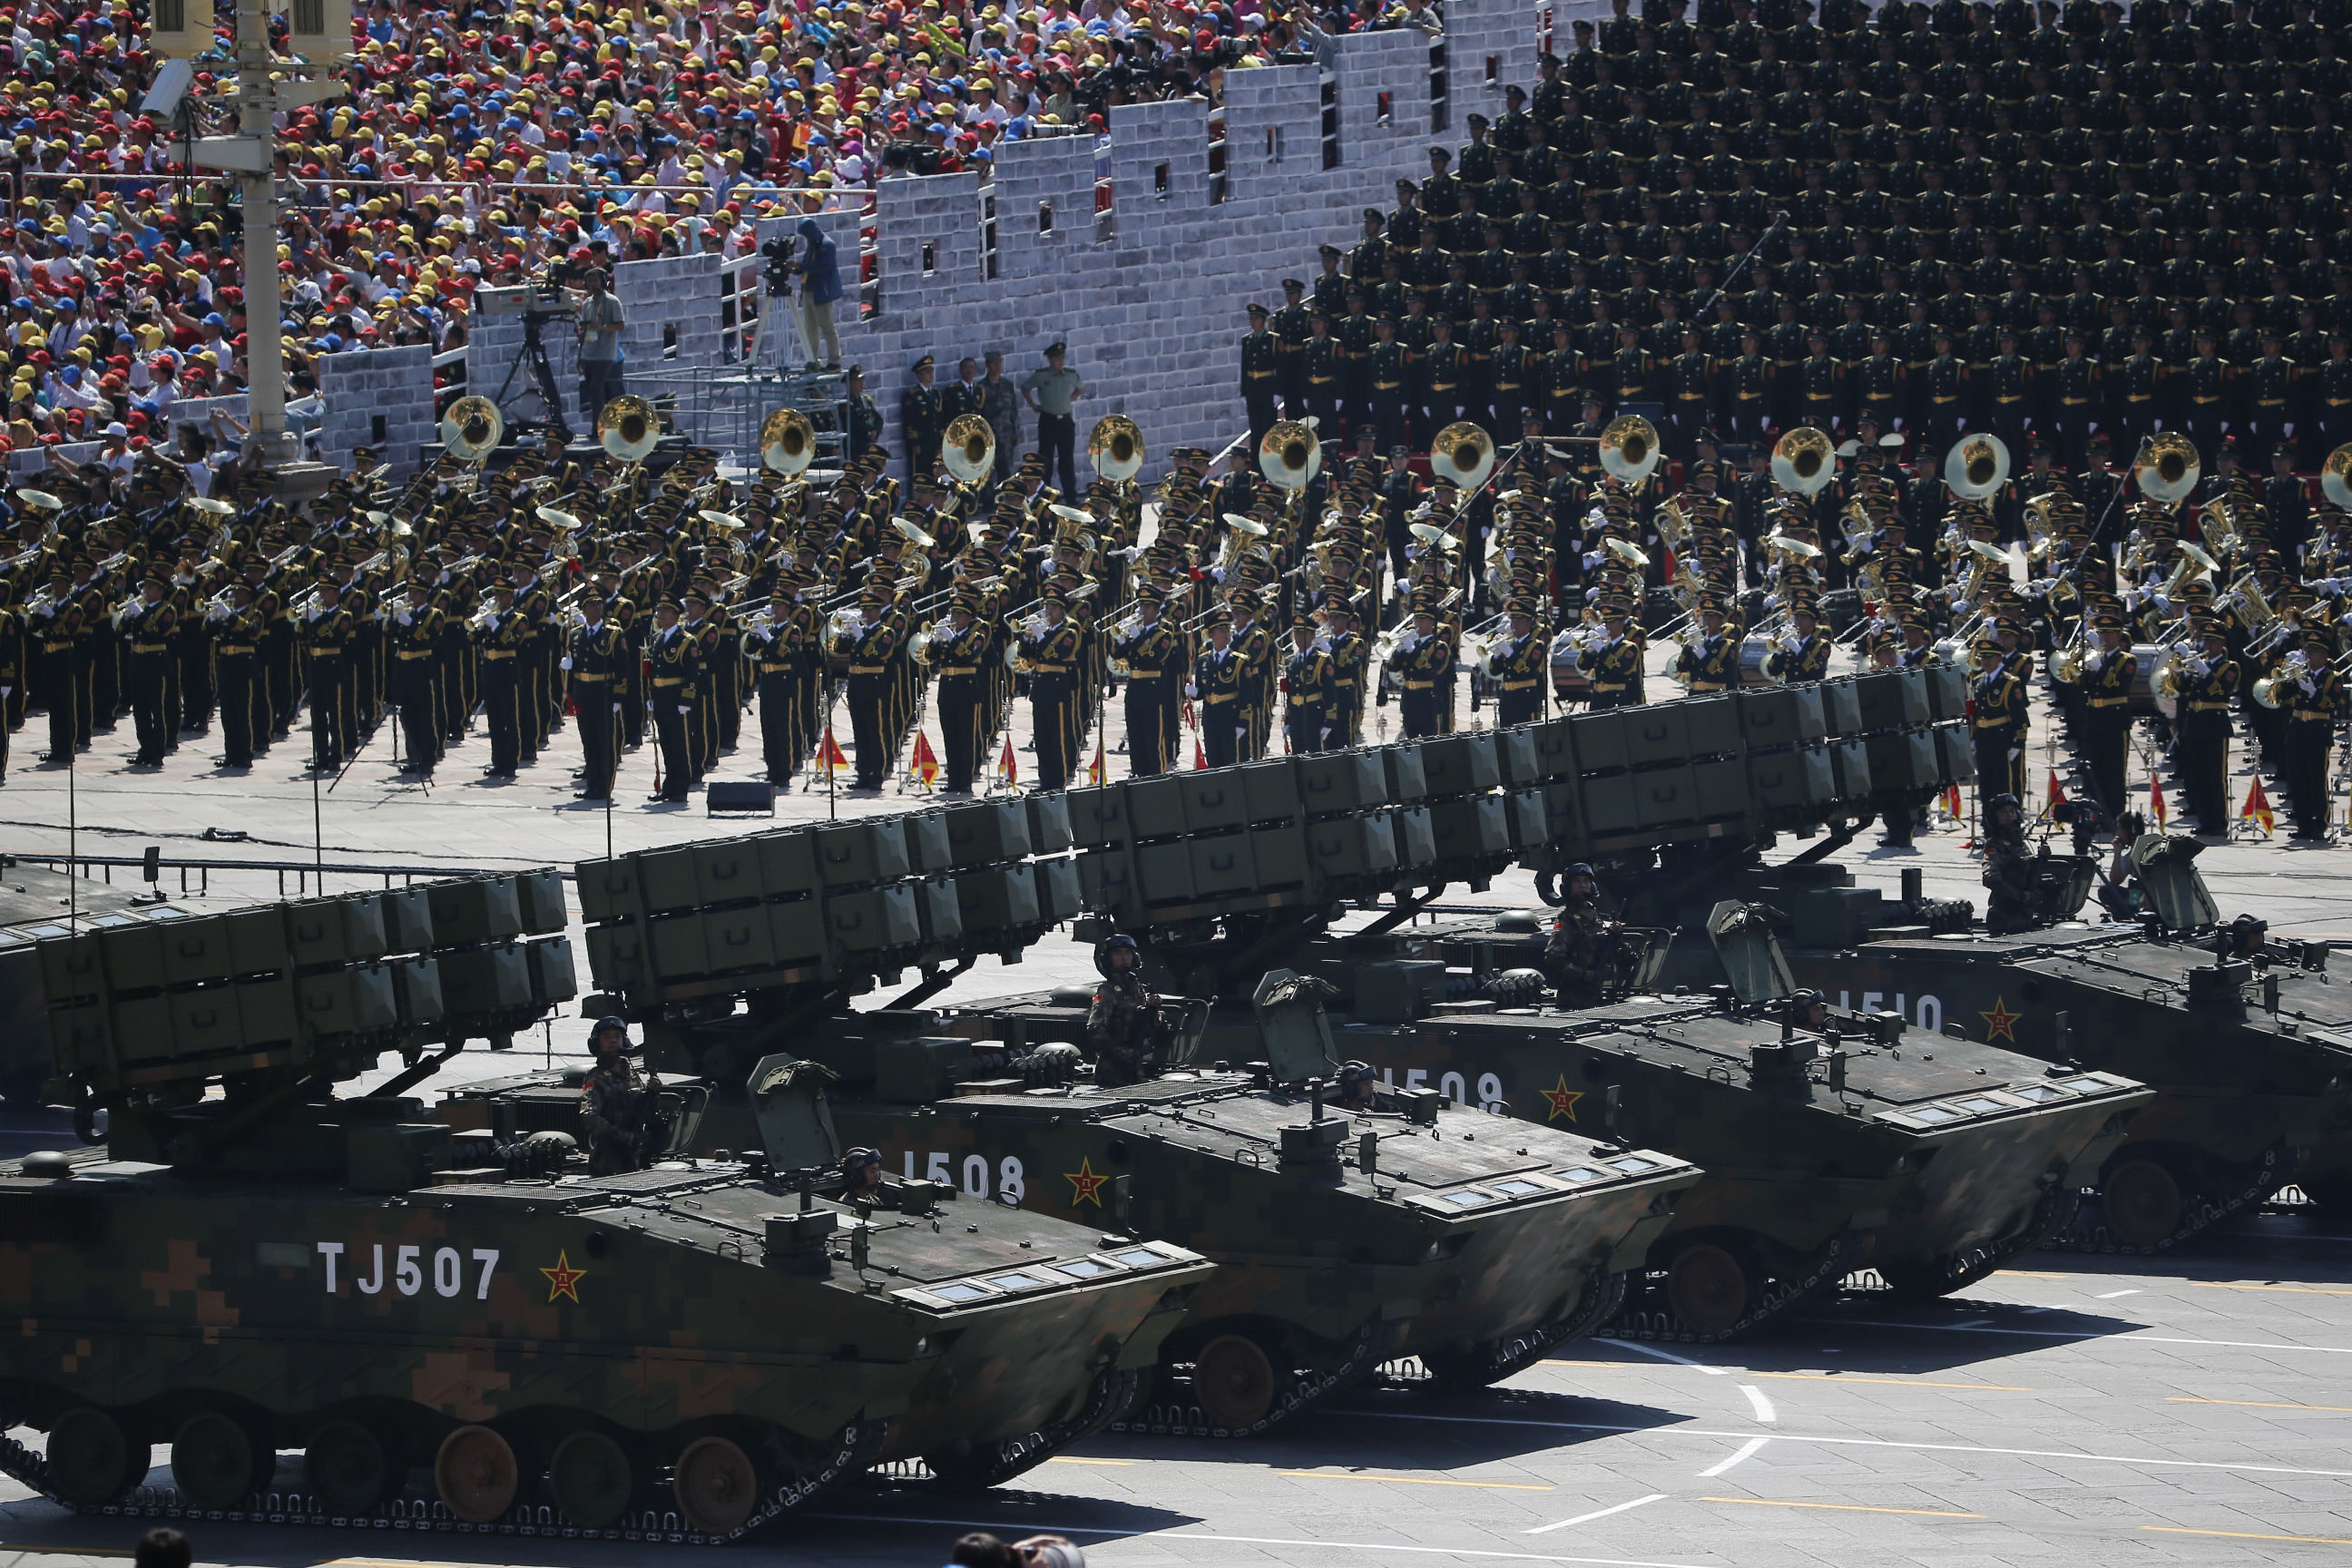 China displays missiles in massive military parade